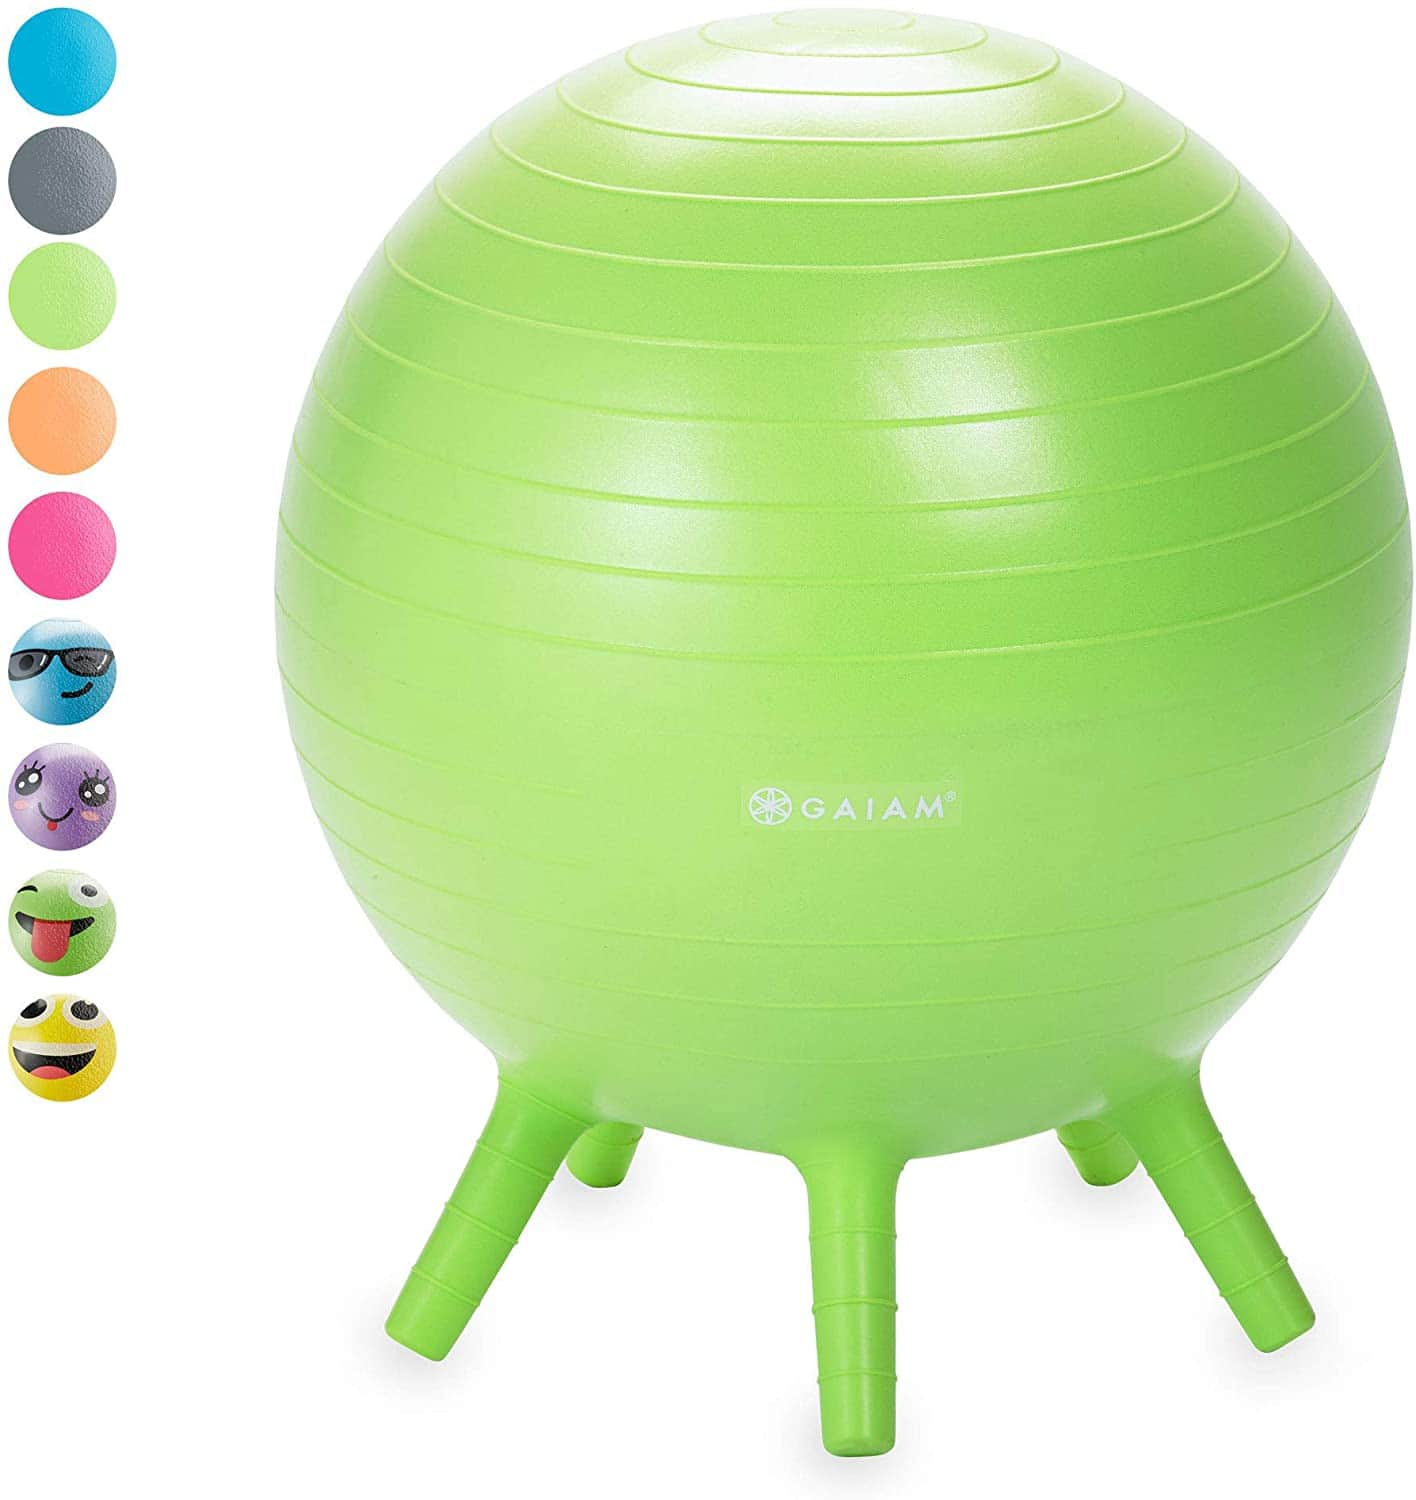 Gaiam Kids' Stay-n-Play Balance Ball $13.80 + Free Shipping w/ Prime or orders $25+